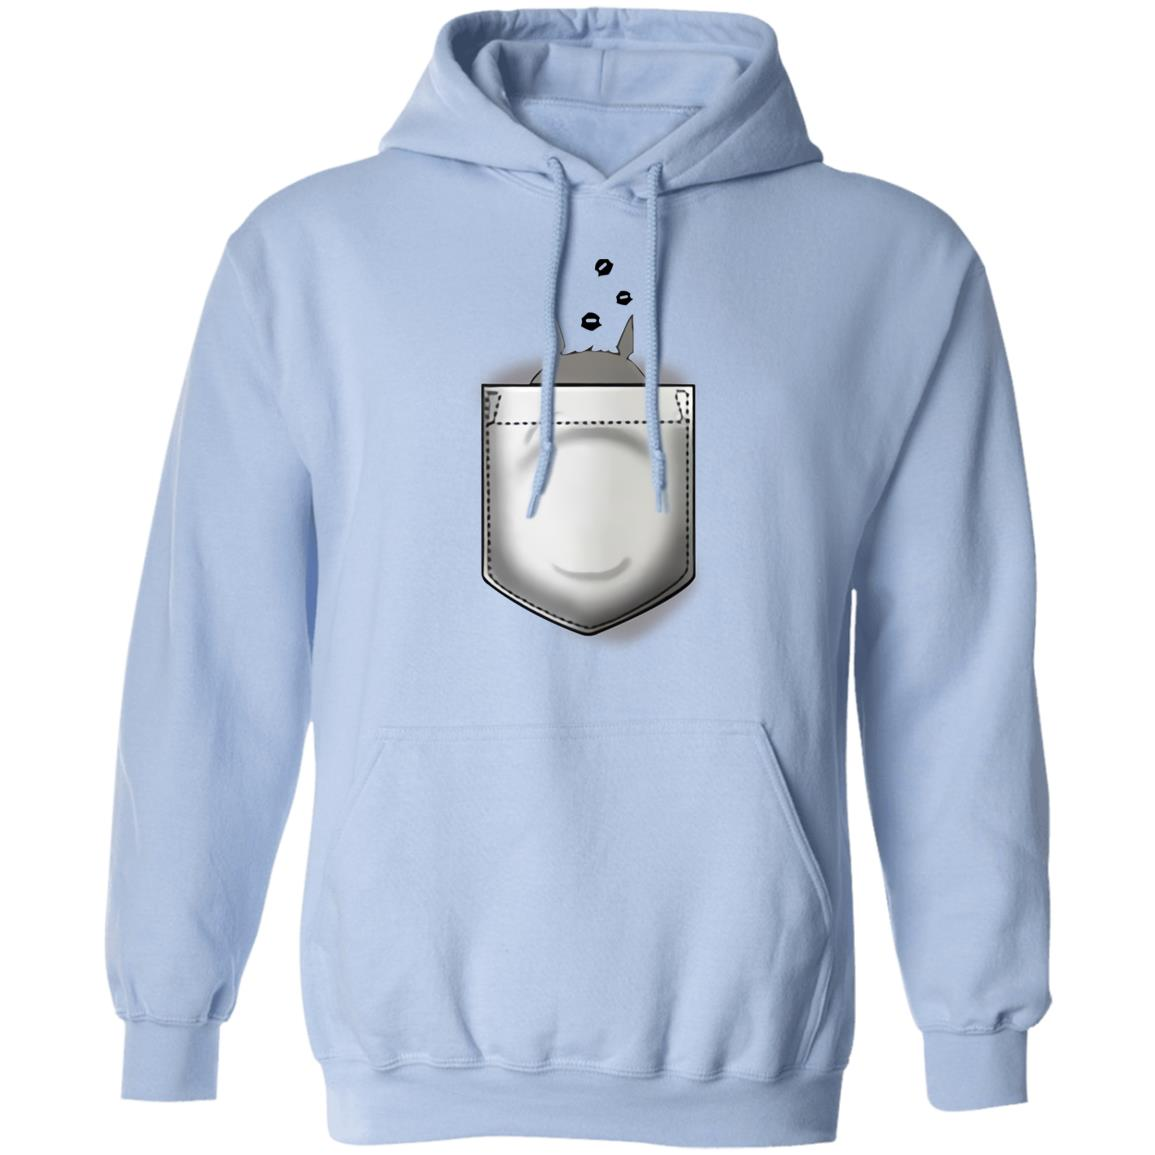 Totoro and Soot Balls in Pocket Hoodie